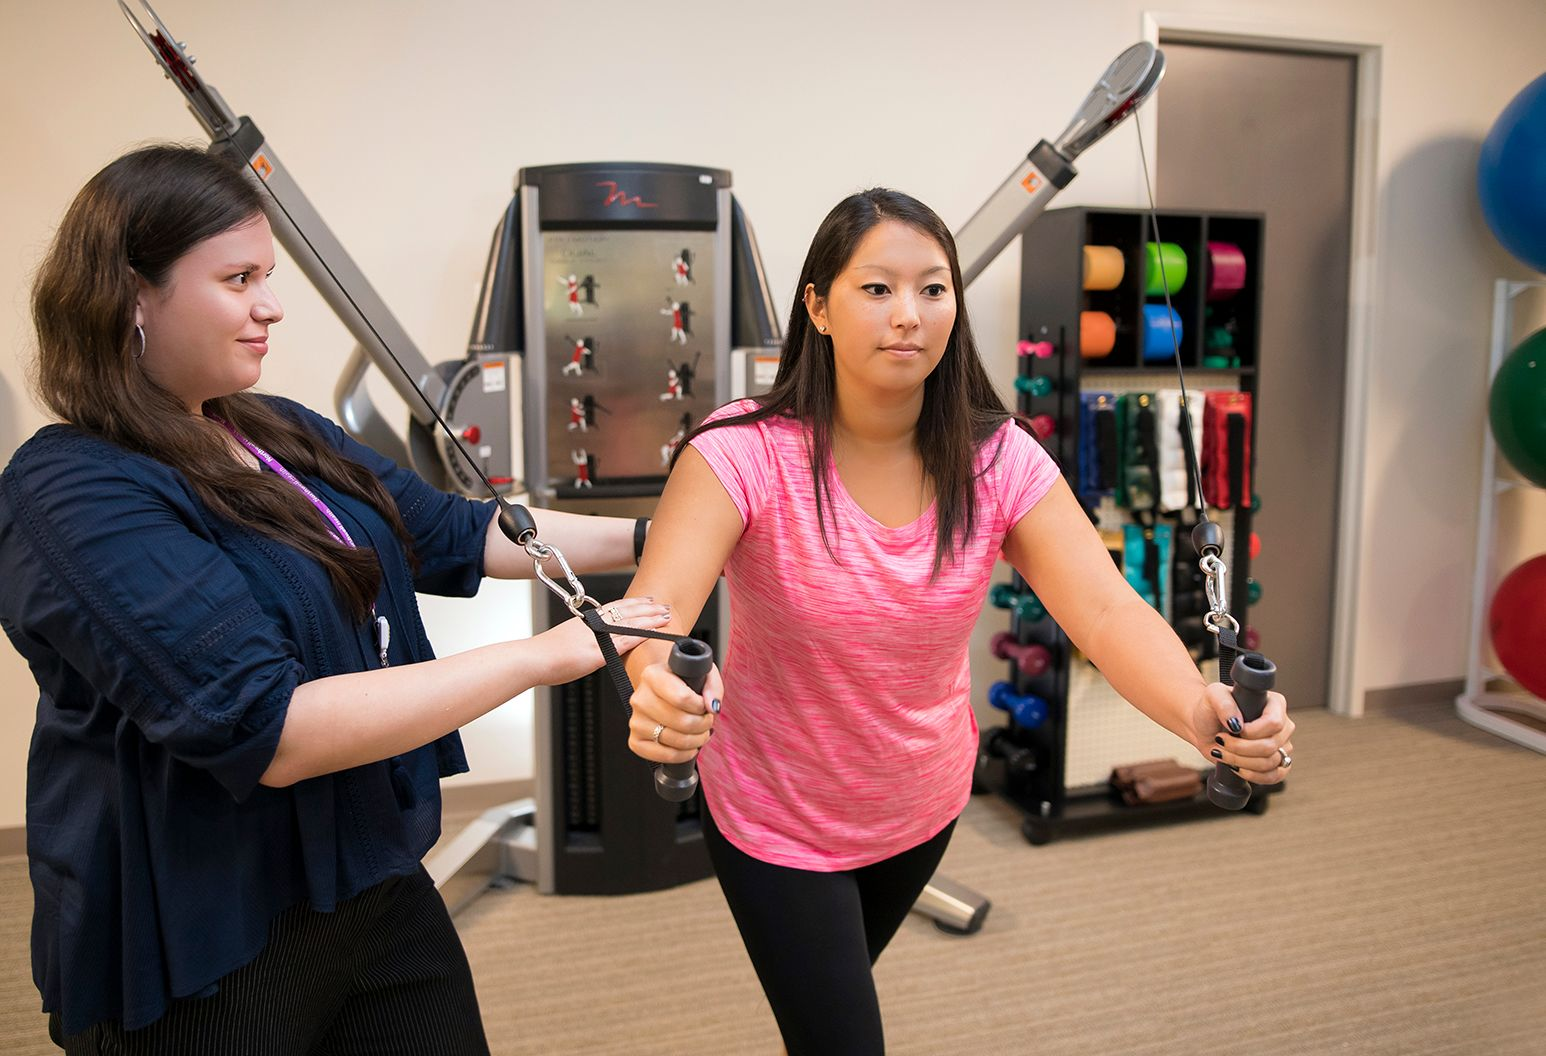 A young woman being examined by a female physical therapist. She is testing her arm strength.